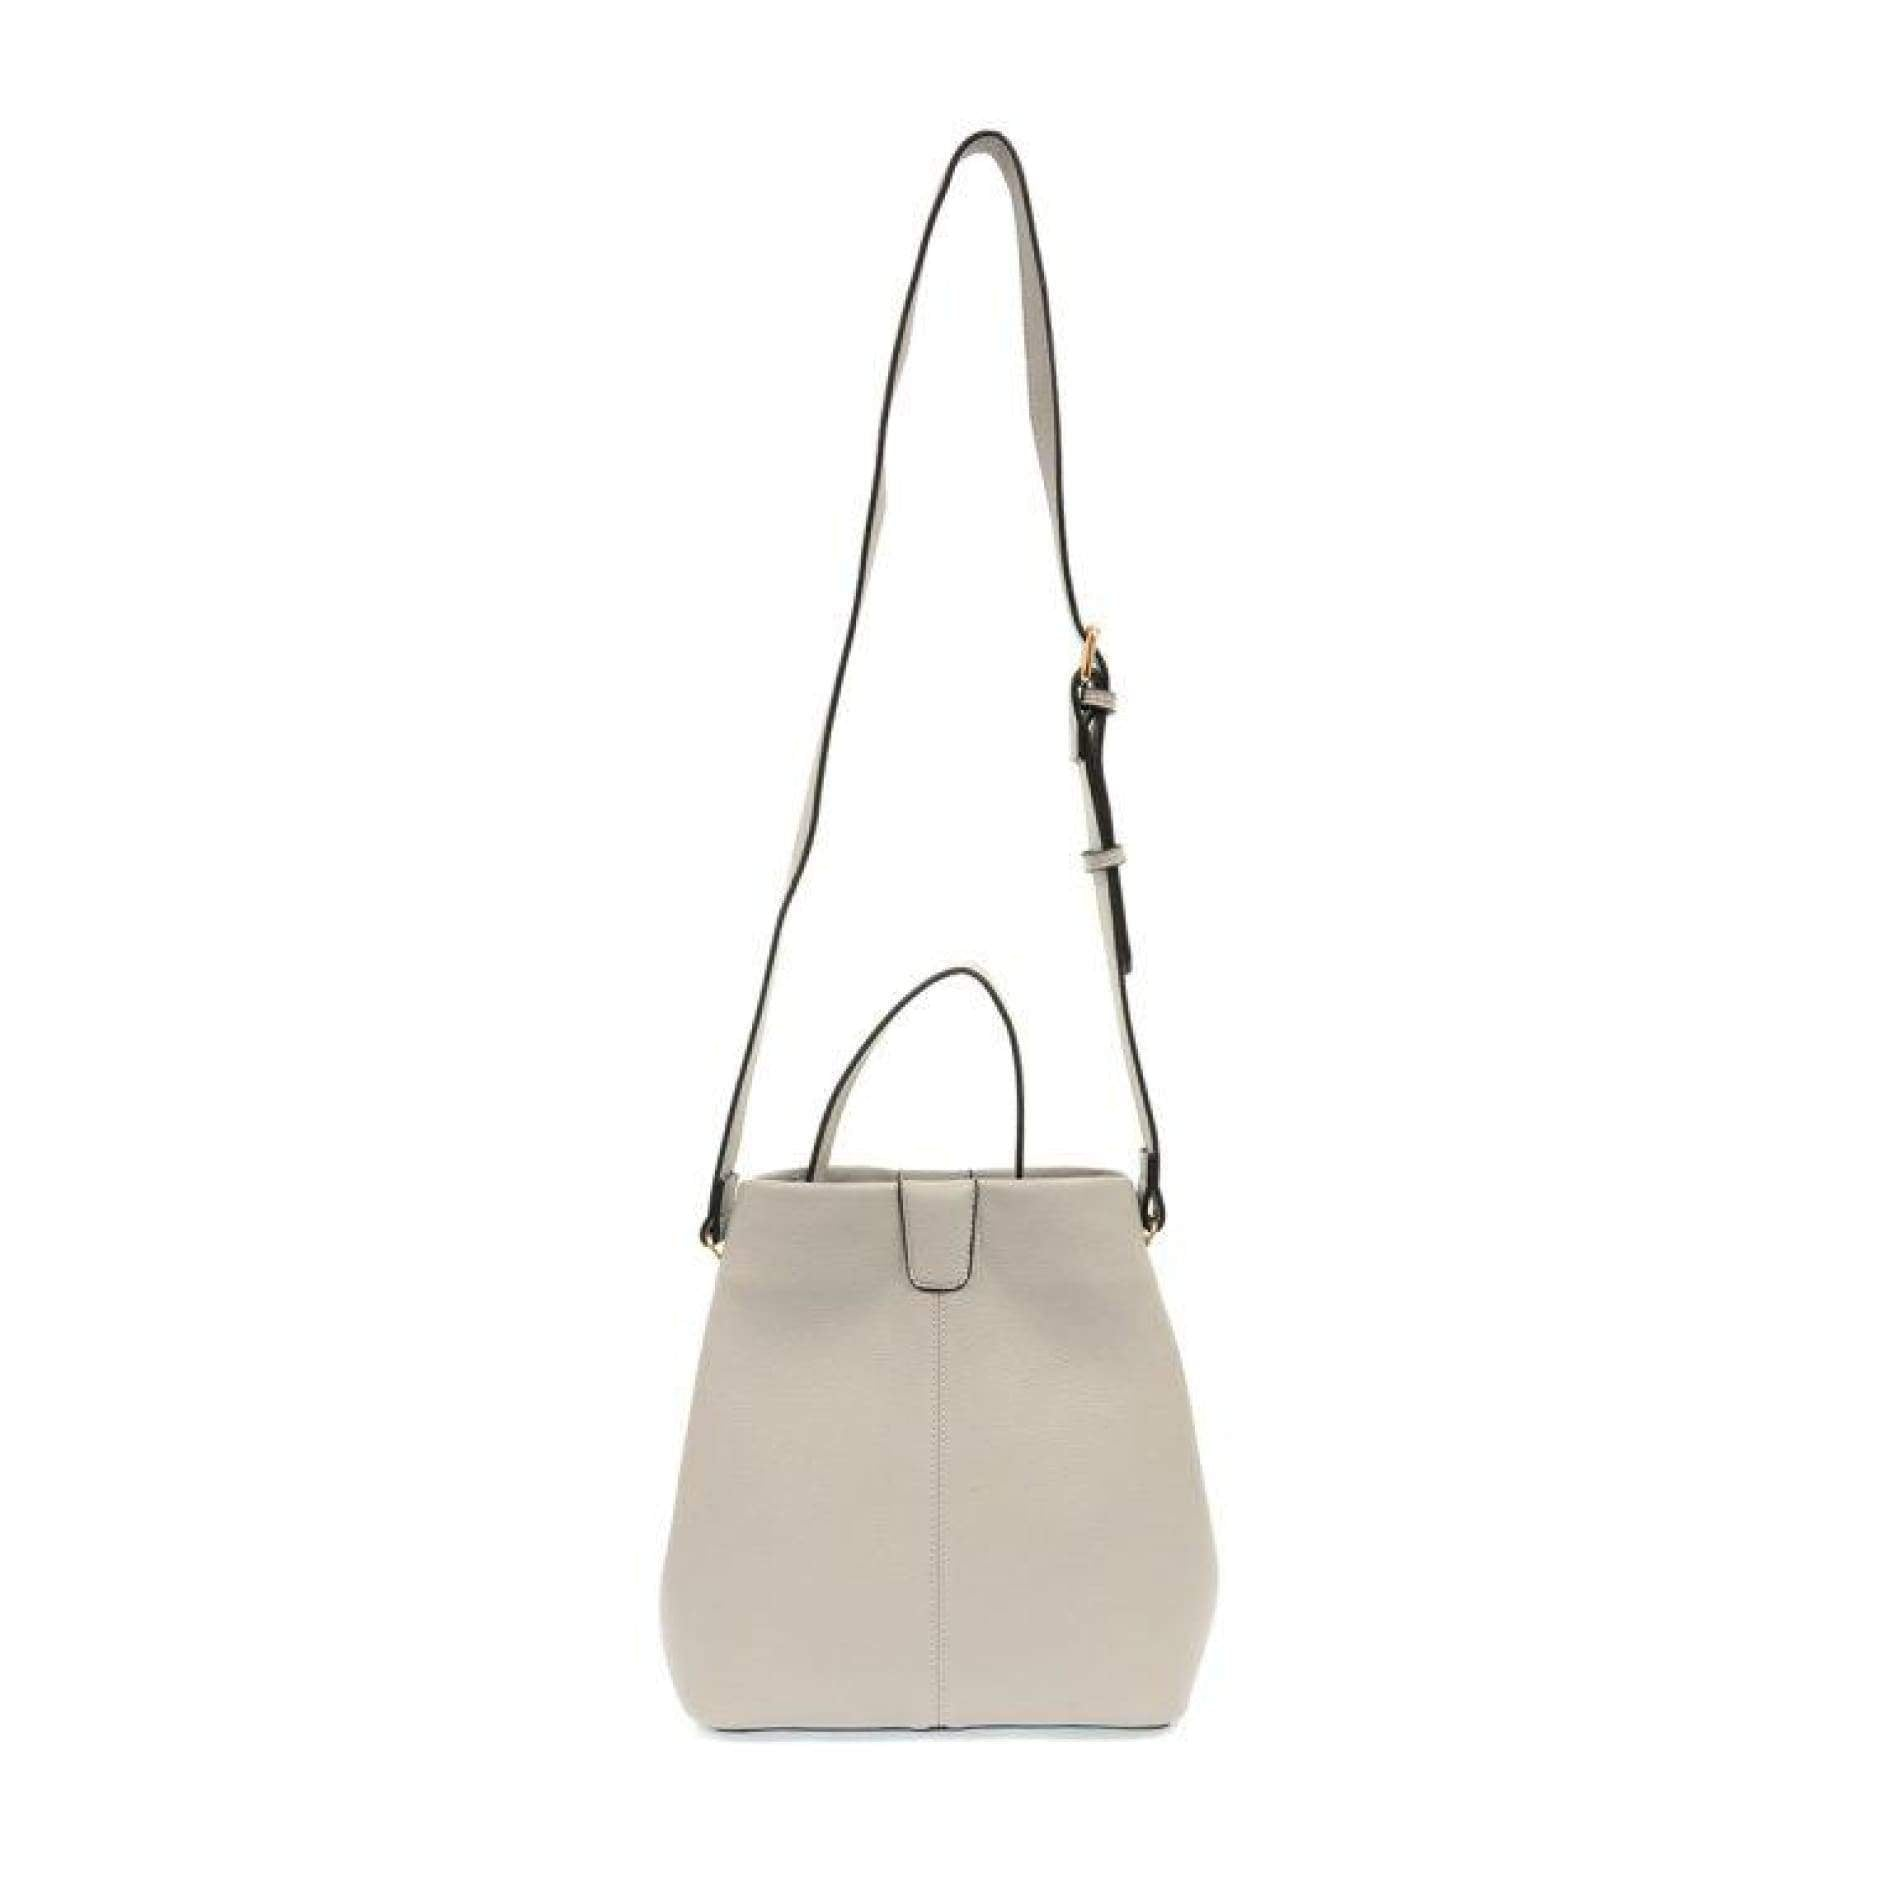 Ava Convertible Shoulder Bag - Grey - Accessories